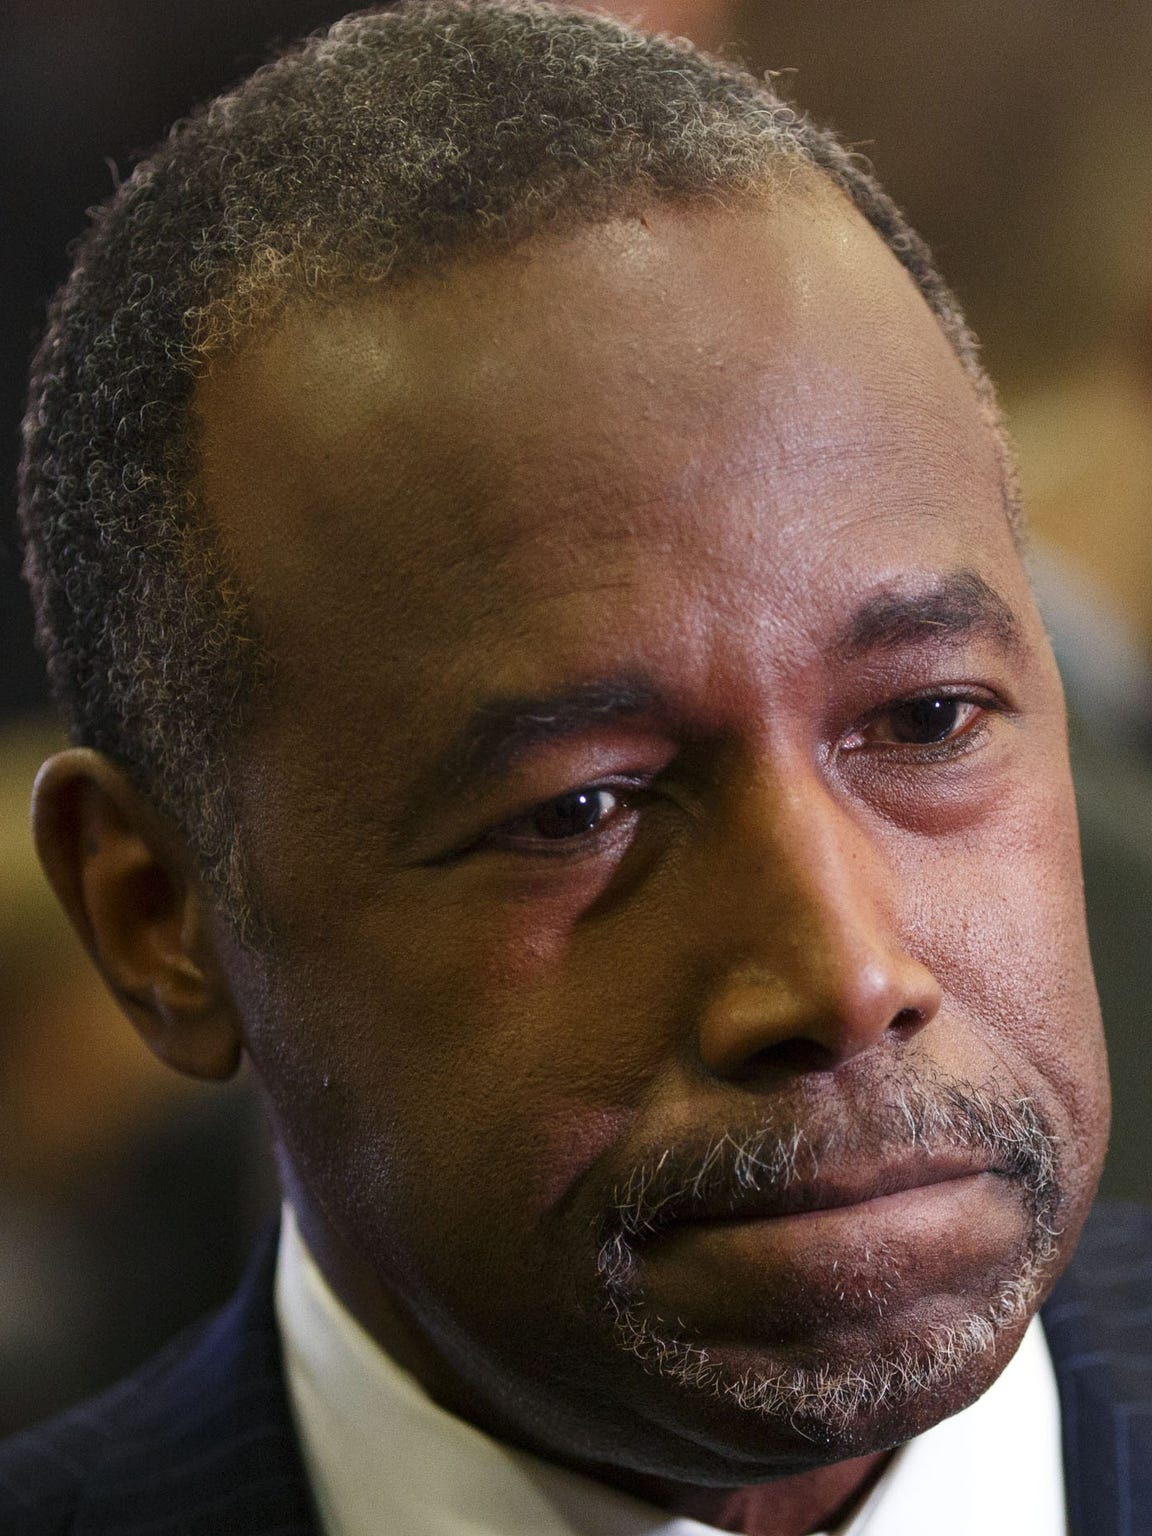 Ben Carson, U.S. secretary of Housing and Urban Development